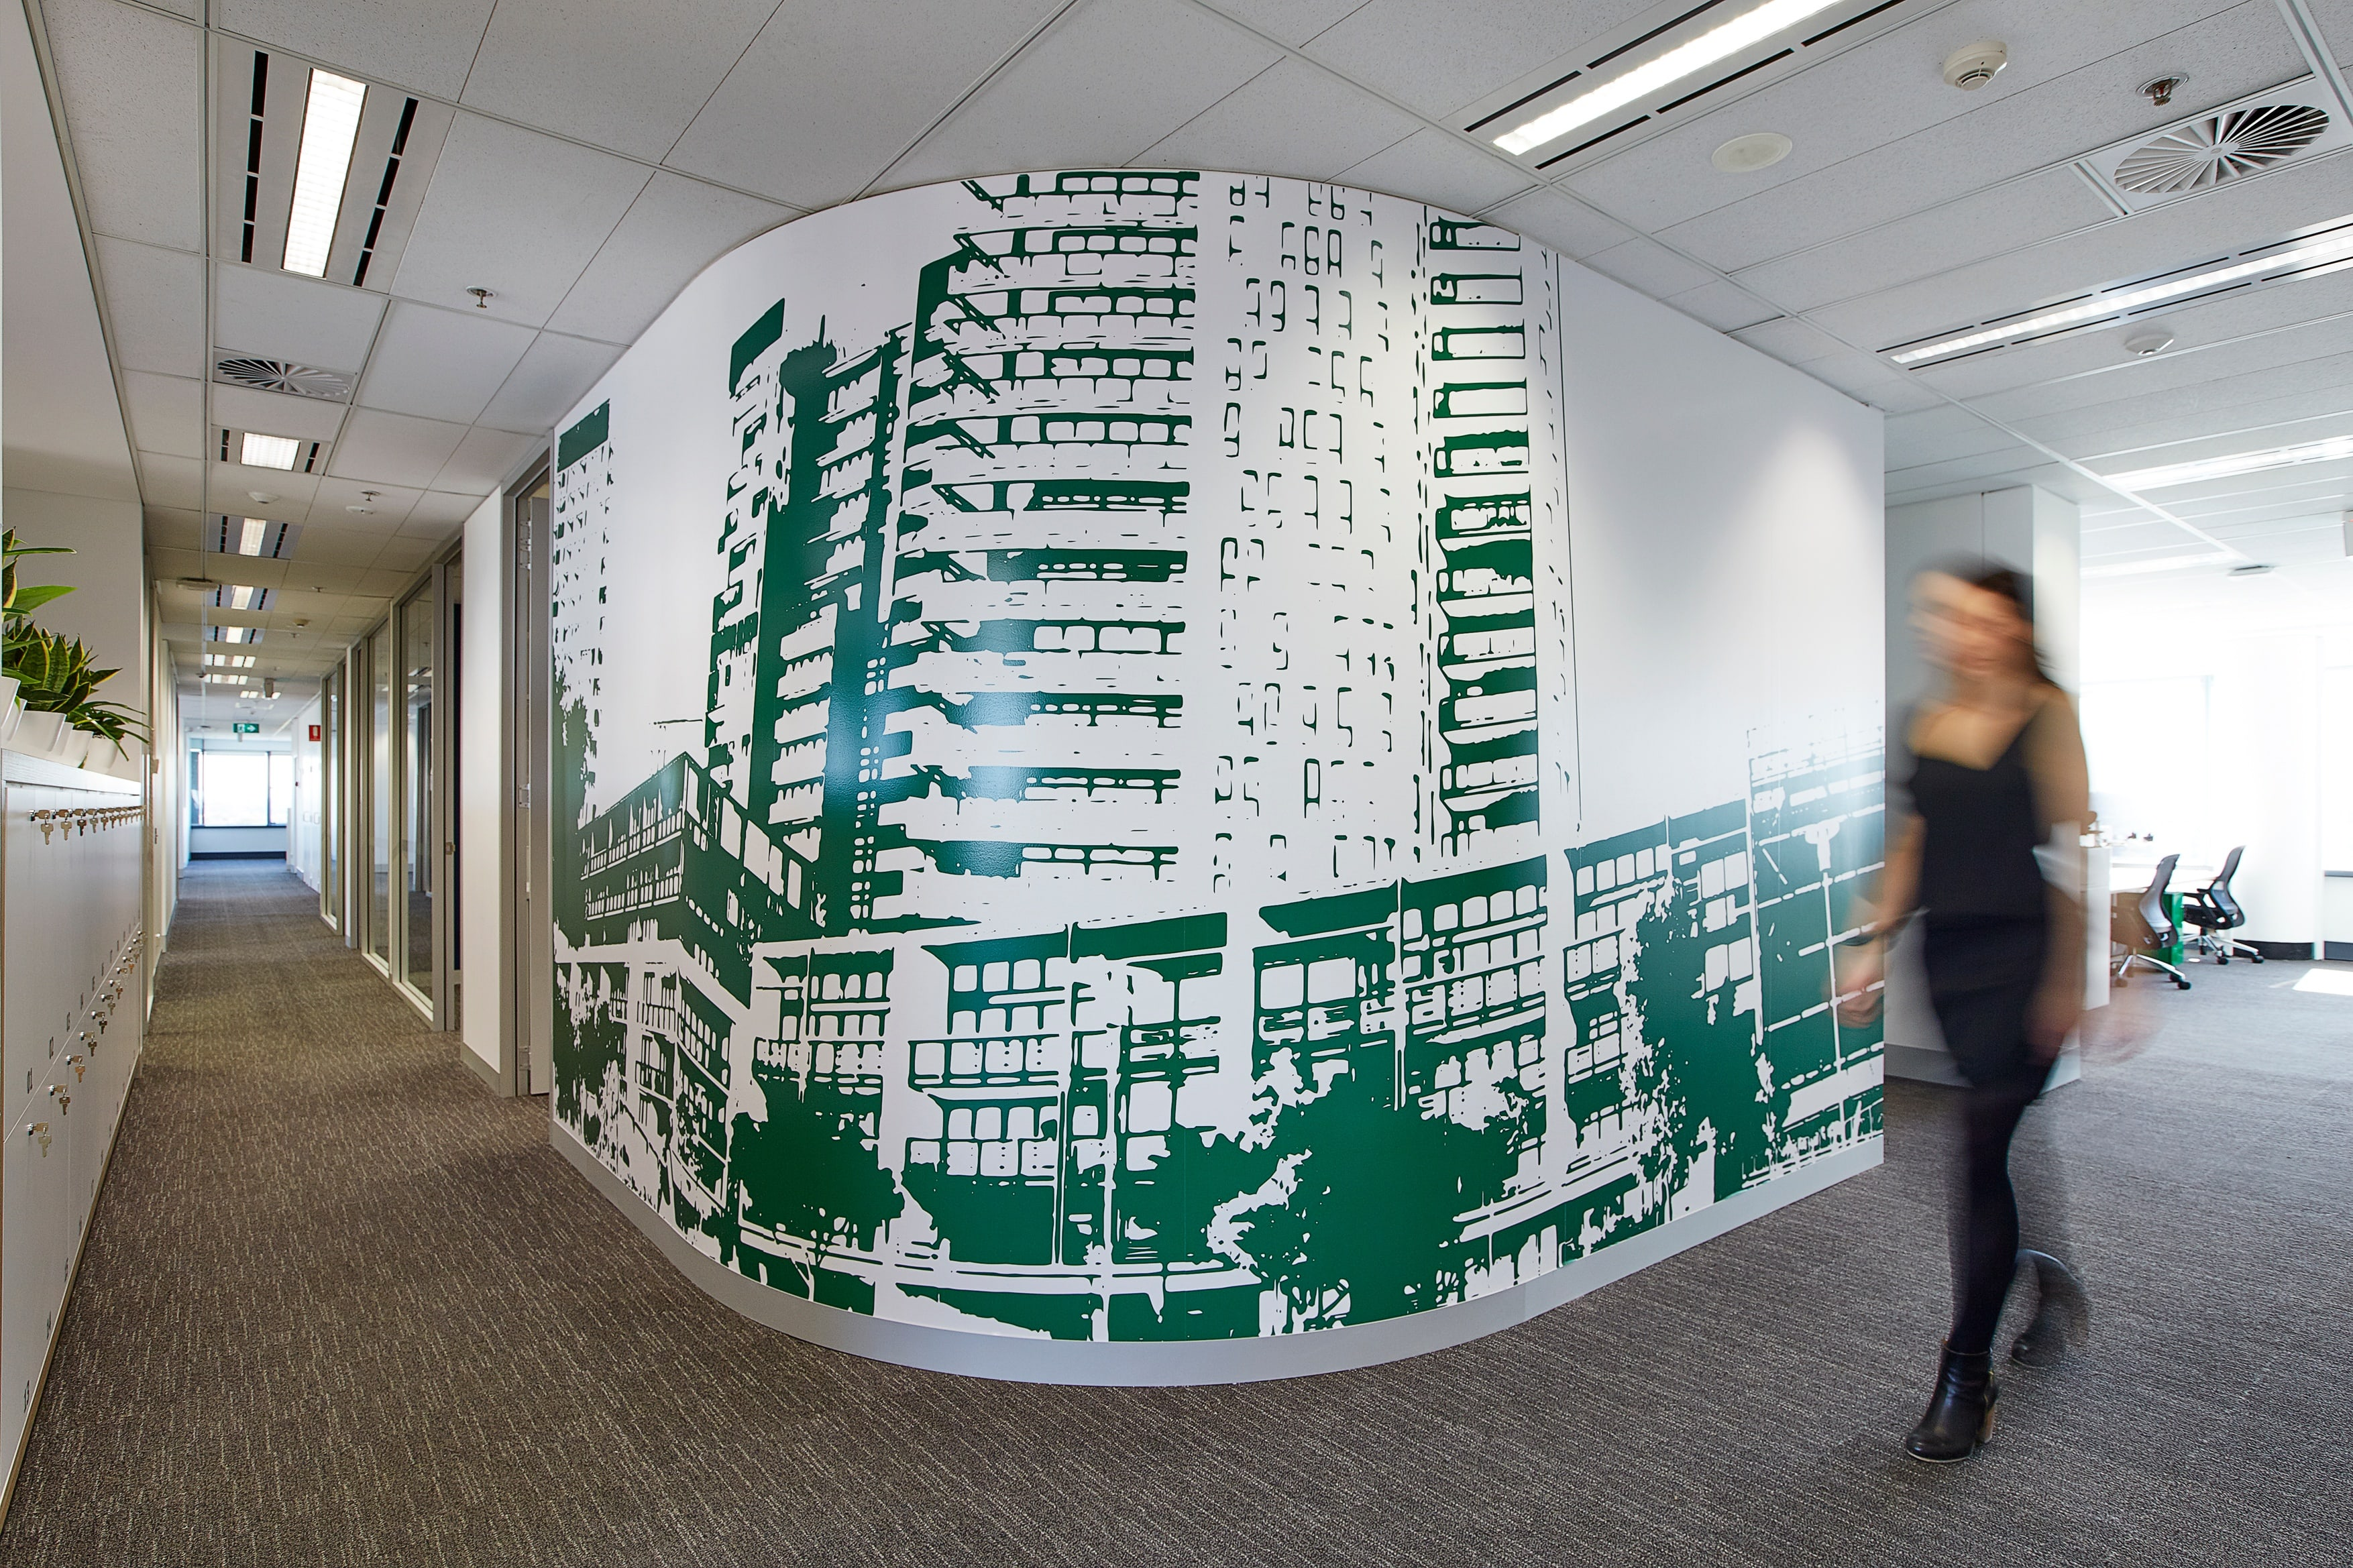 Hanson Parramatta Fitout Tenant Representation, Interior Design, Project & Construction Management Project Image 7 by PCG